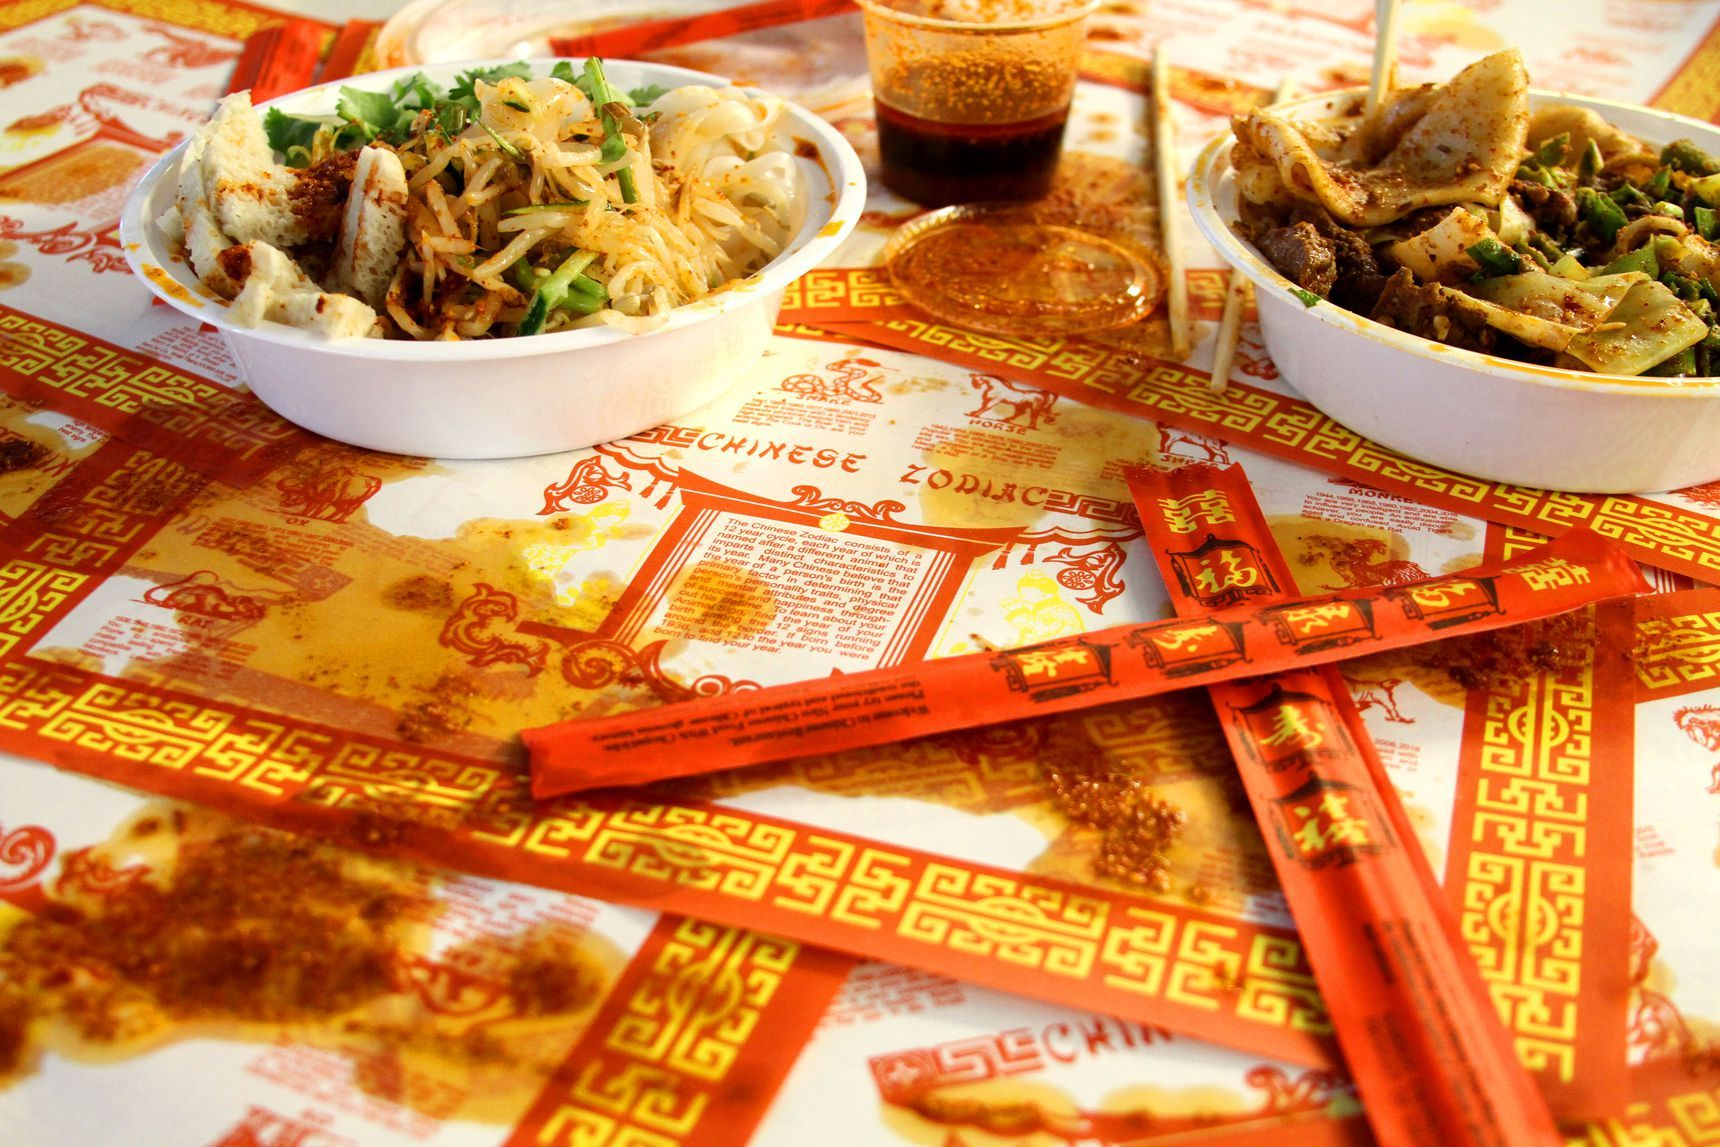 Where Did The All Too Familiar Chinese Zodiac Placemat Come From Chinese Restaurant American Cuisine American Restaurant